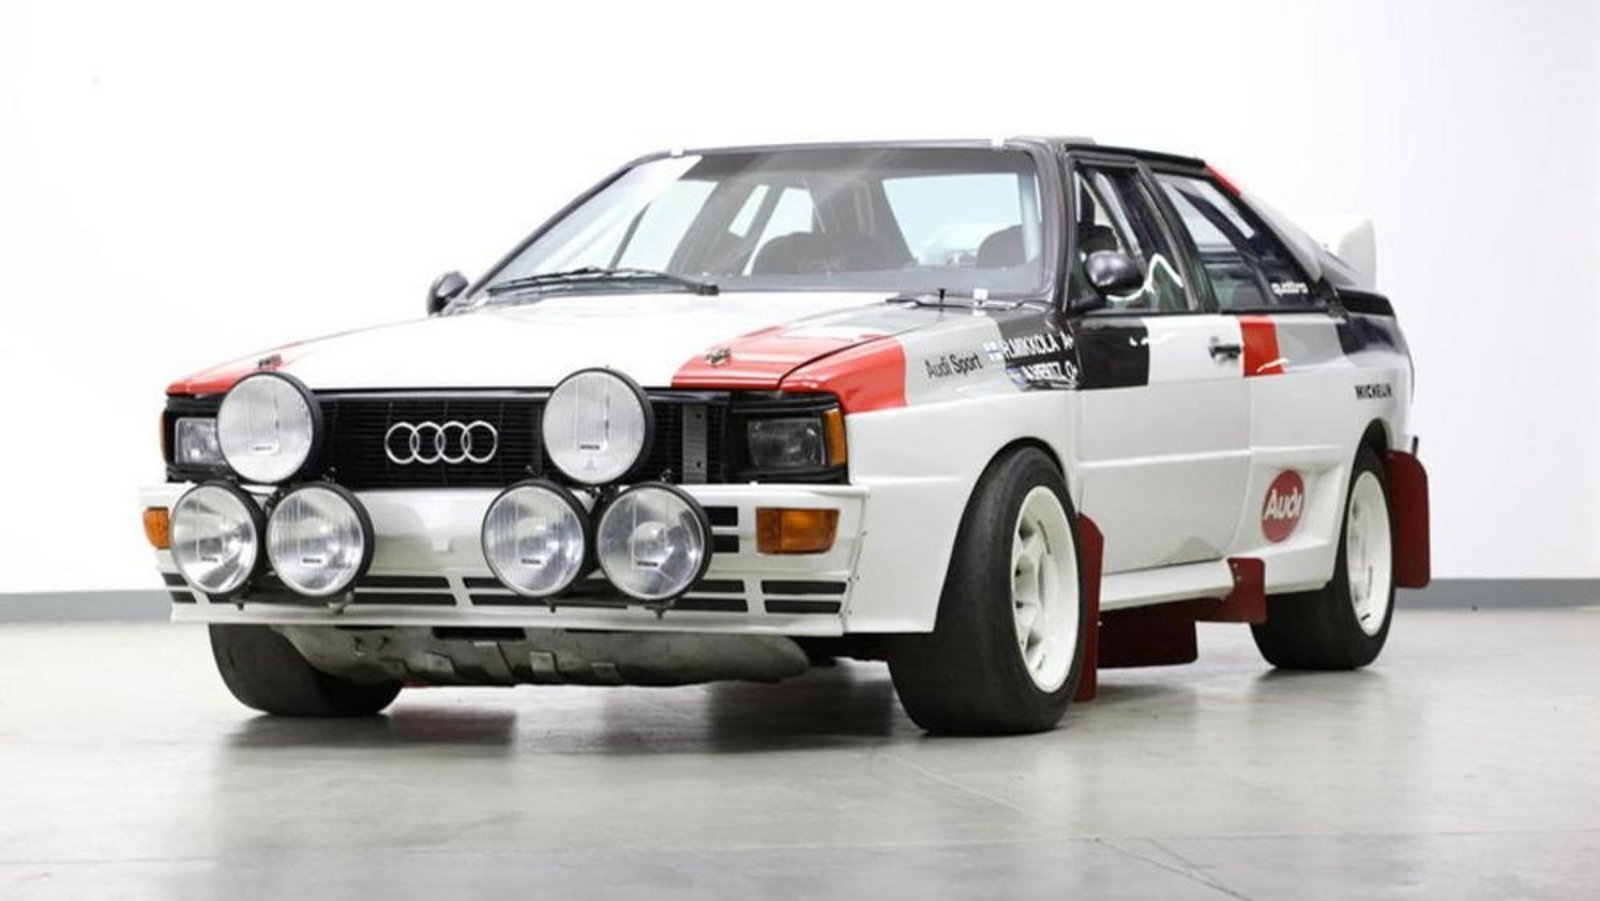 1982 audi quattro a1 group b rally car review top speed. Black Bedroom Furniture Sets. Home Design Ideas